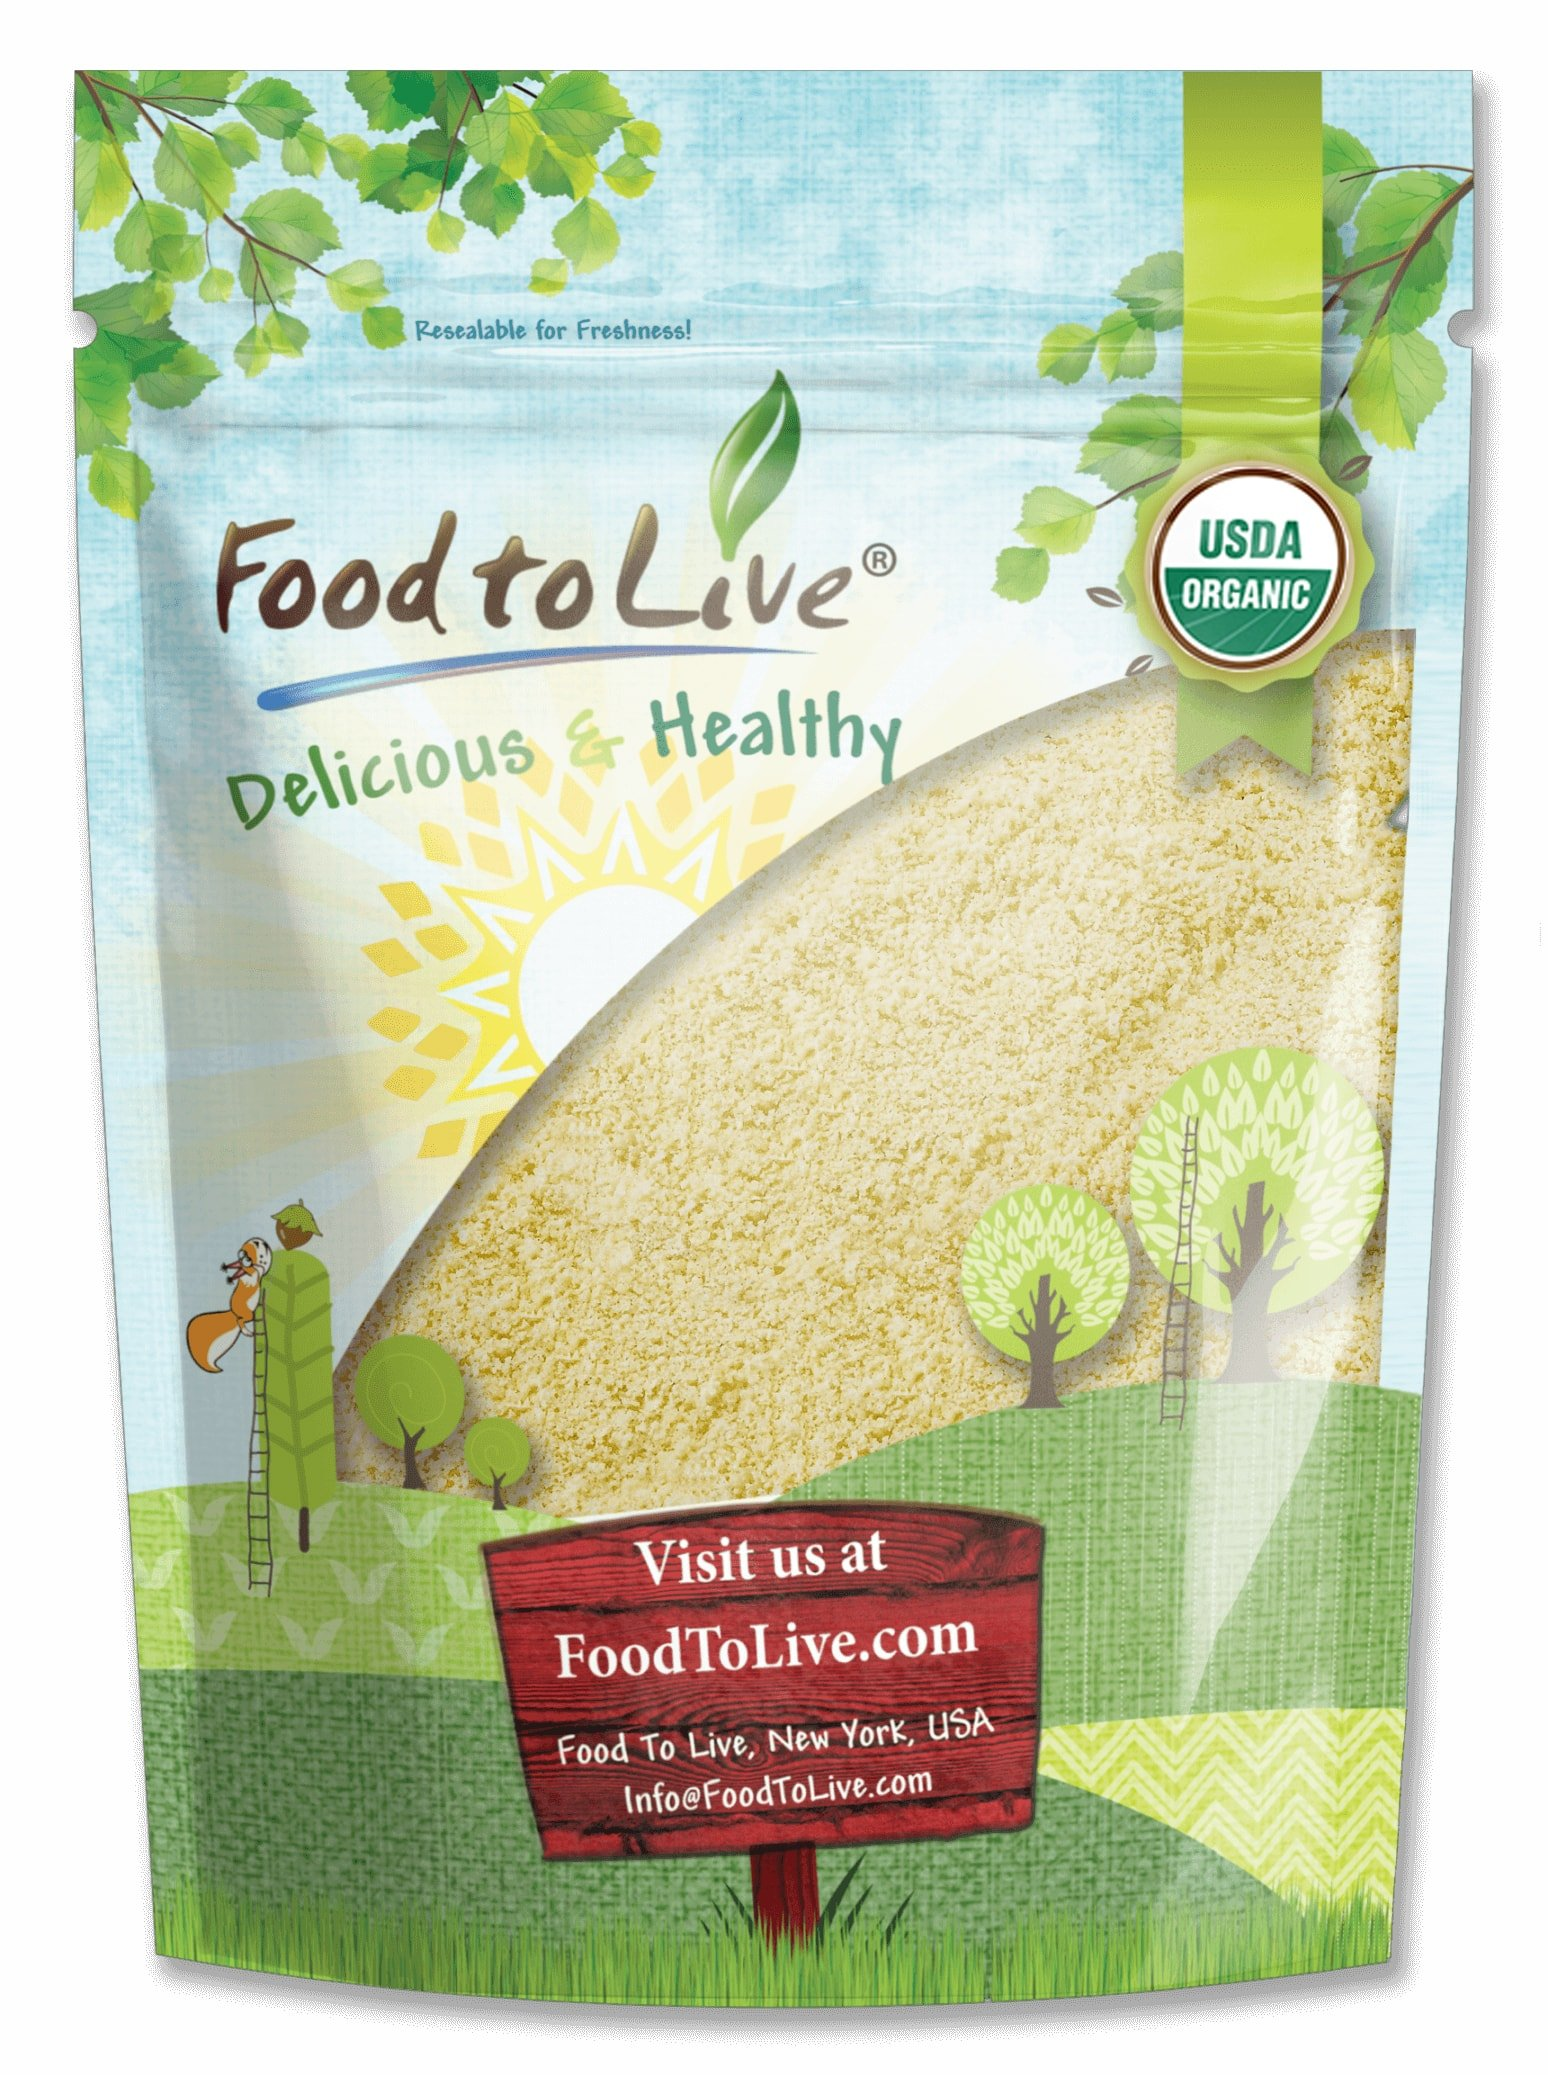 Organic Almond Flour, 4 Pounds - Extra Fine Blanched Prime Meal, Non-GMO, Low Carb, Culinary Grade, Kosher, Keto, Paleo and Vegan Super Powder, Bulk, Product of California by Food to Live